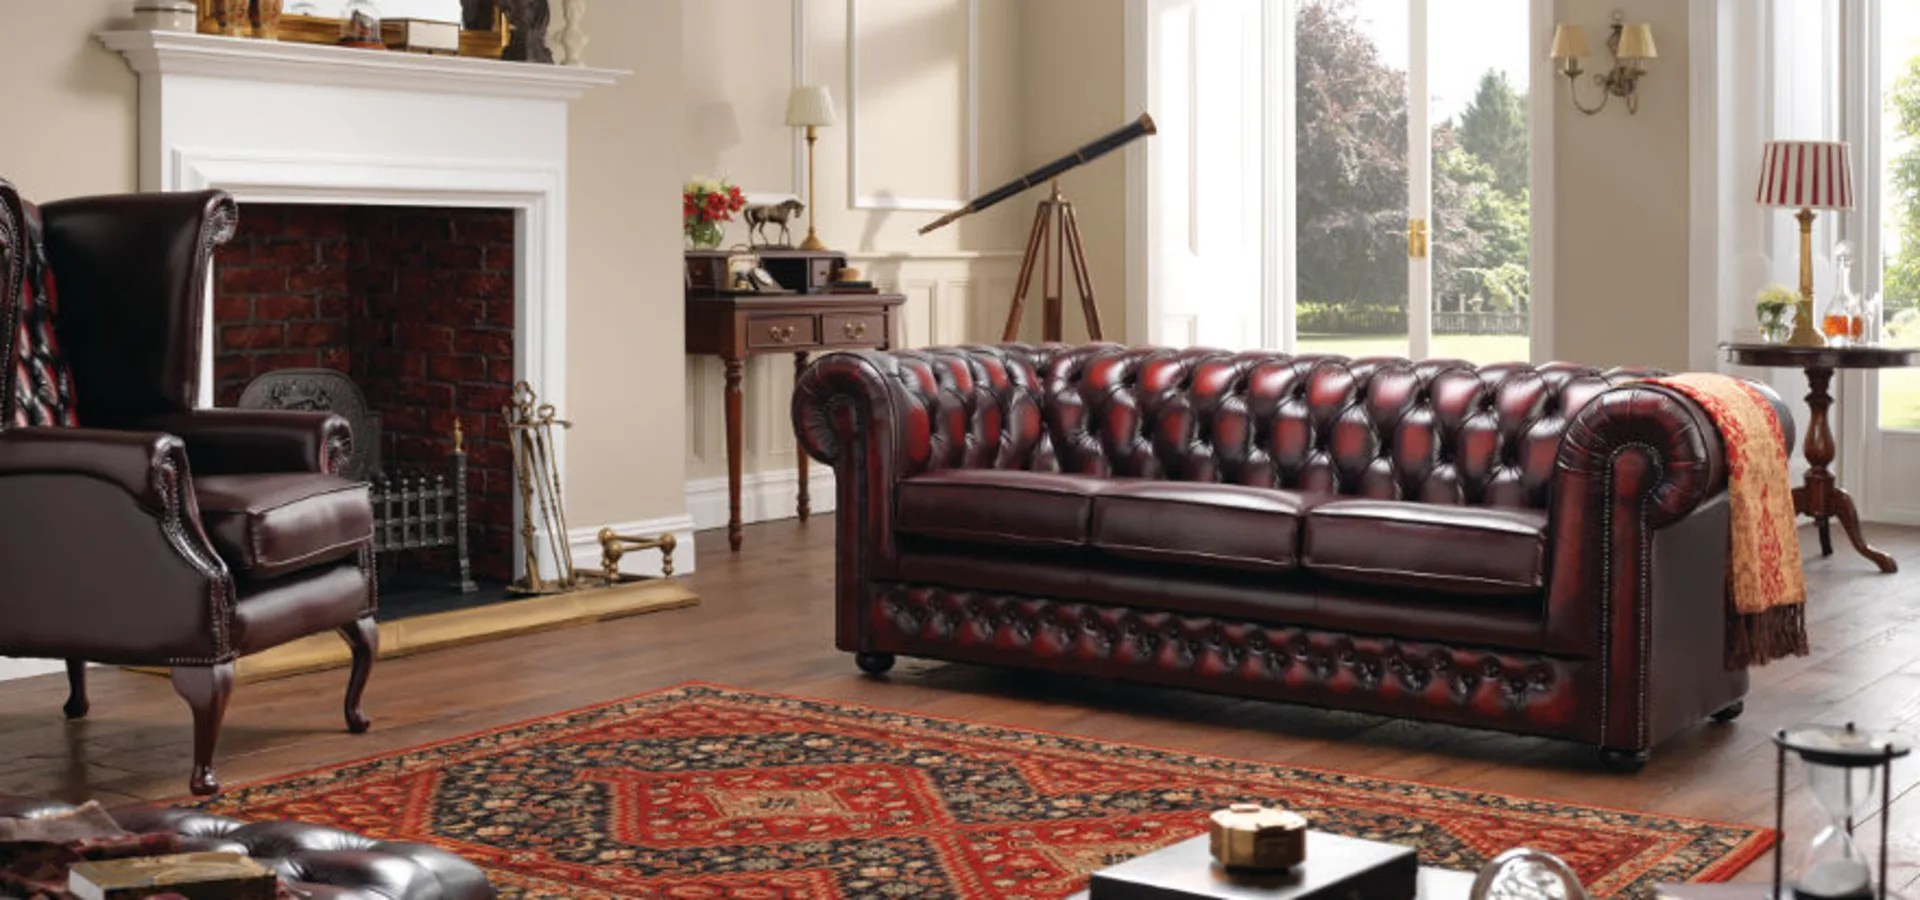 sofasofa reviews modern faux leather sofa bed a few of our products by homify